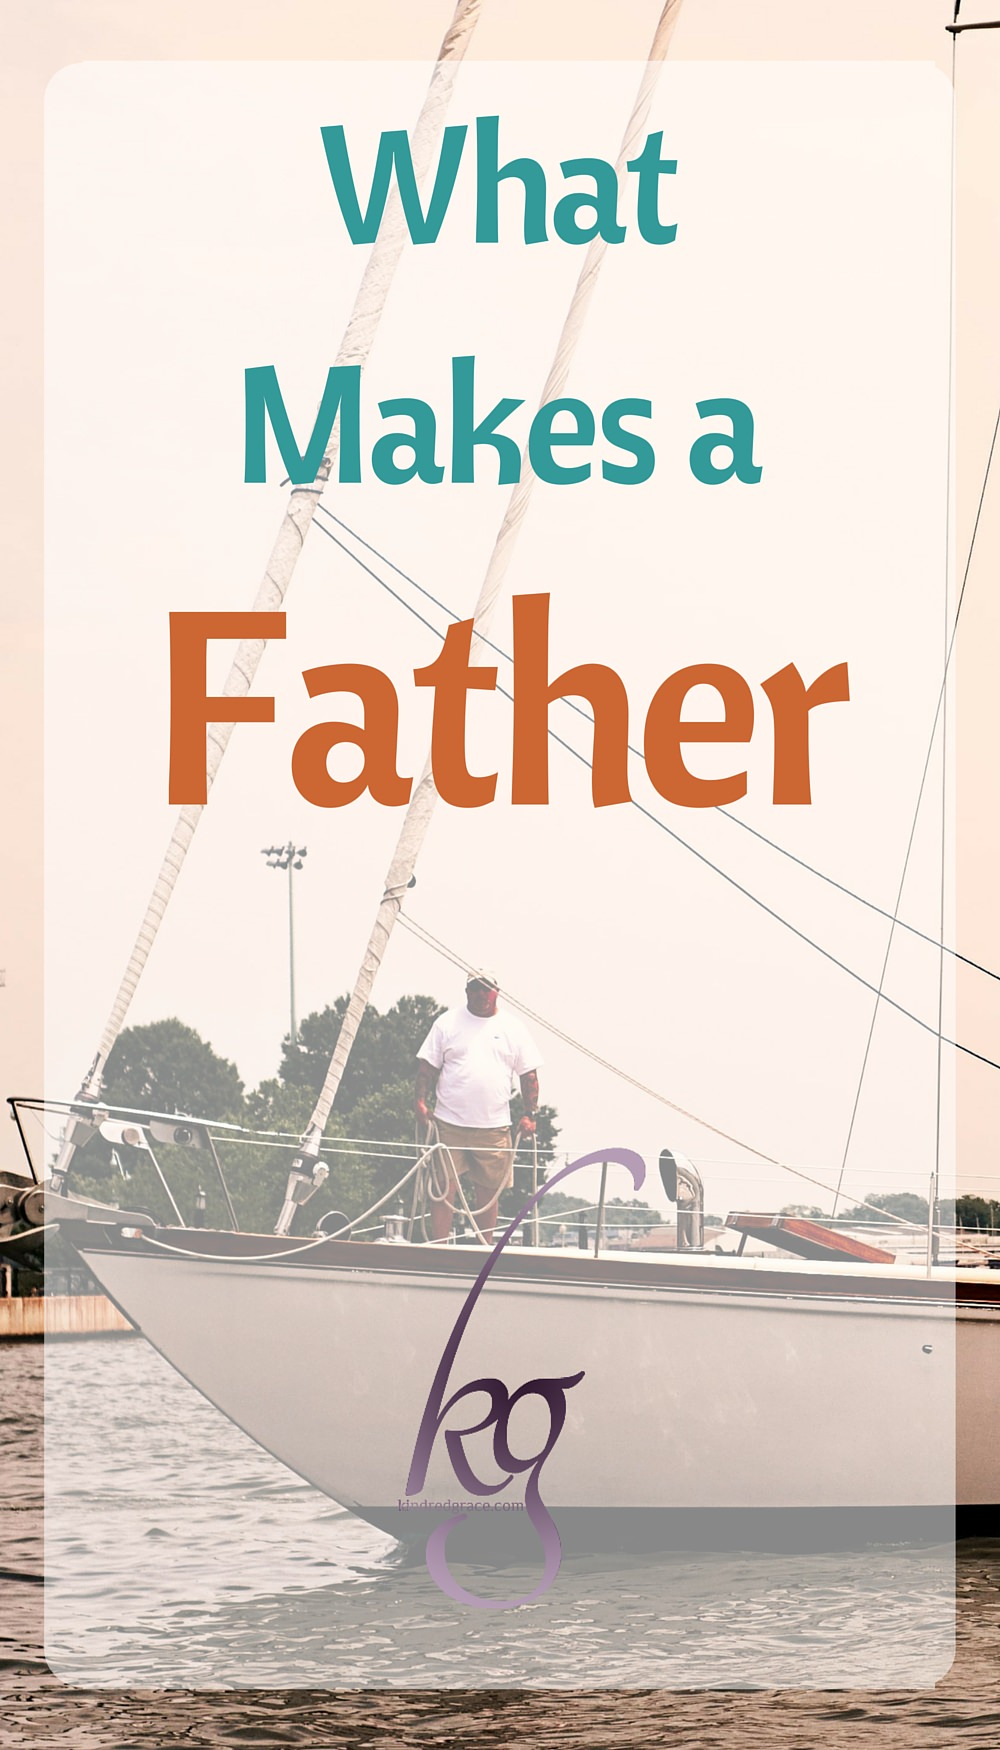 Men young and old possess the qualities we cherish in our God and in our fathers. Even greater than my desire for my son to become a father, I desire for him to possess the character traits modeled in our Heavenly Father. No matter what jobs or roles he takes on, those qualities are what really define a man. via @KindredGrace